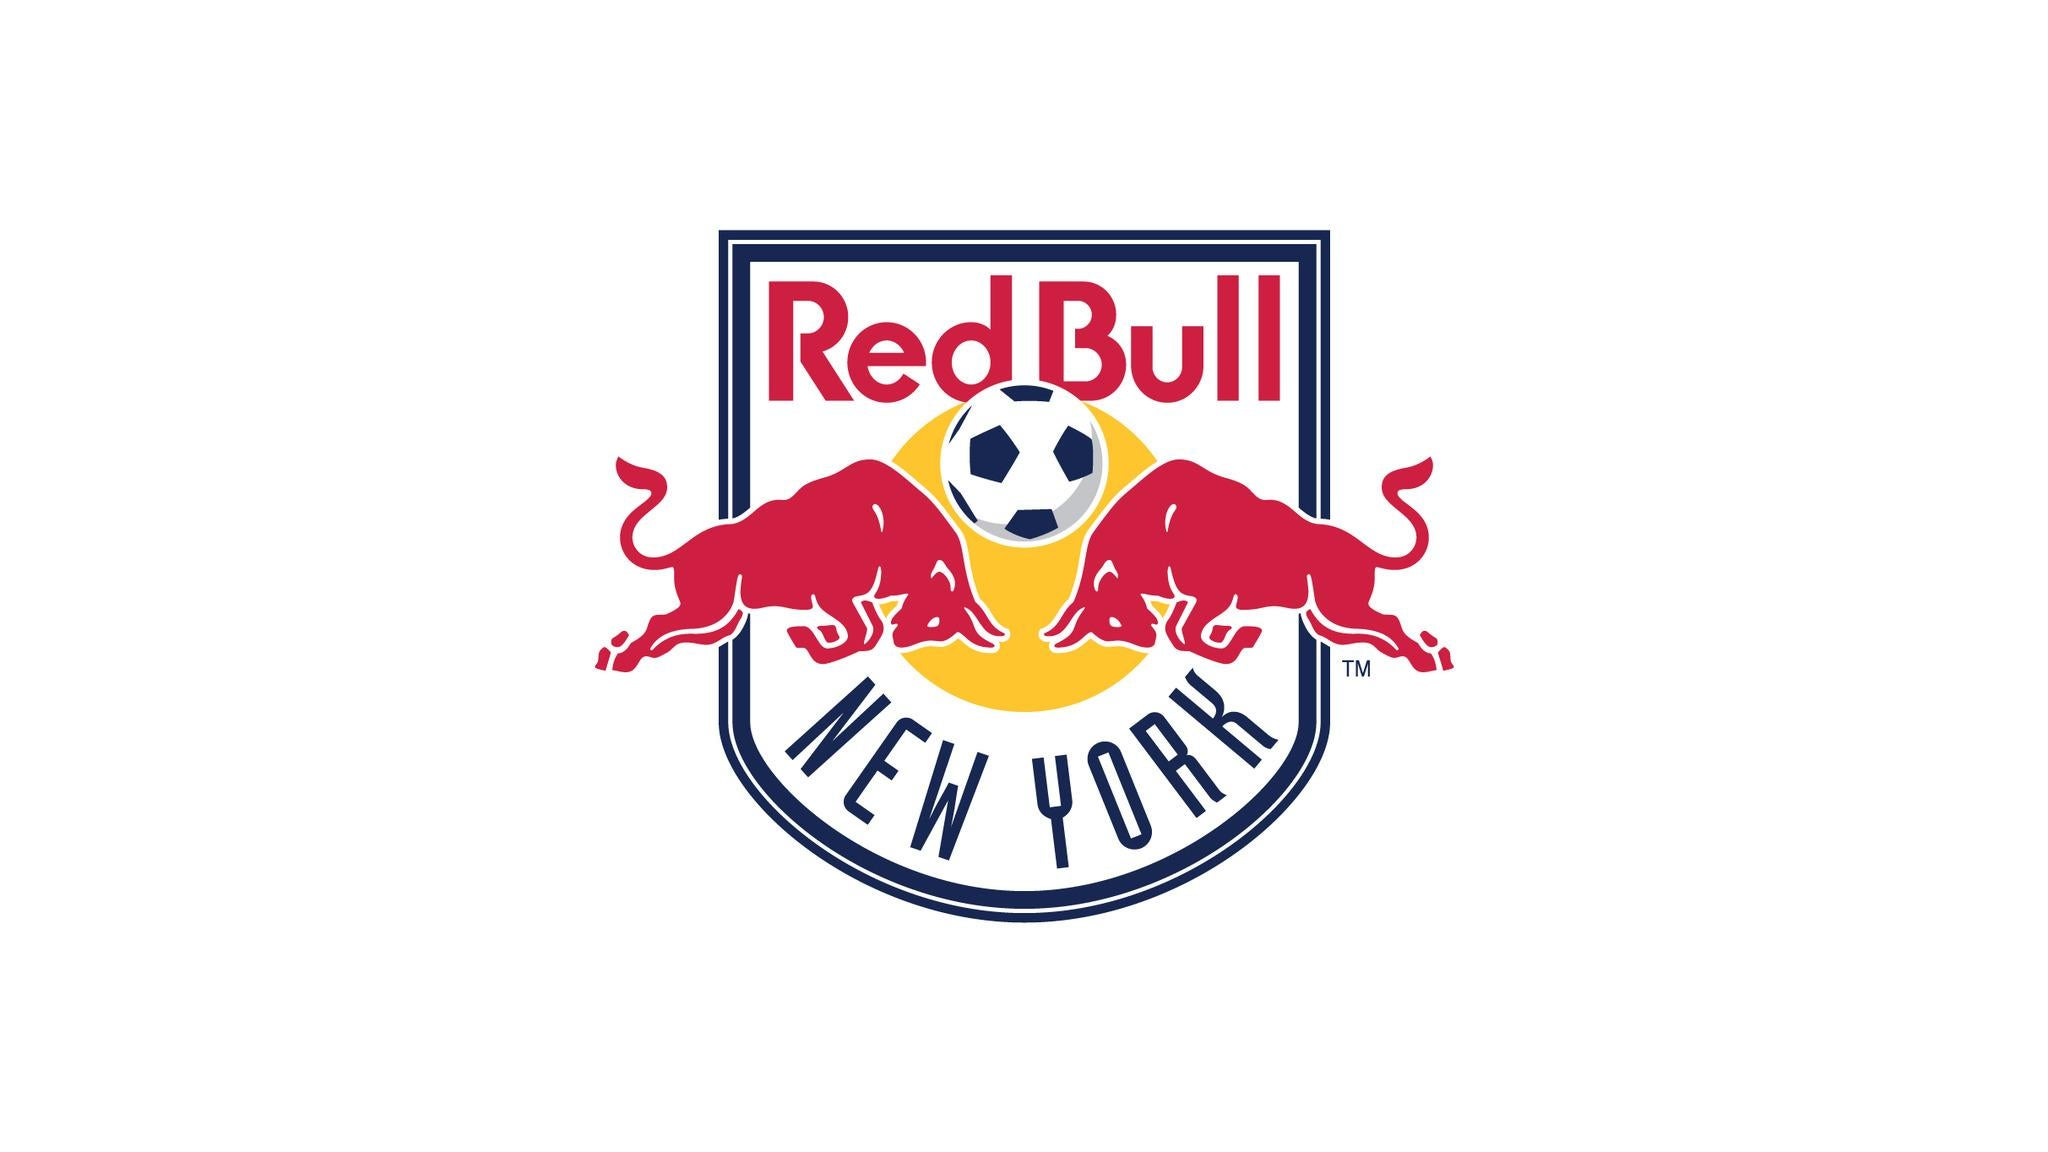 New York Red Bulls vs. Antigua GFC at Red Bull Arena